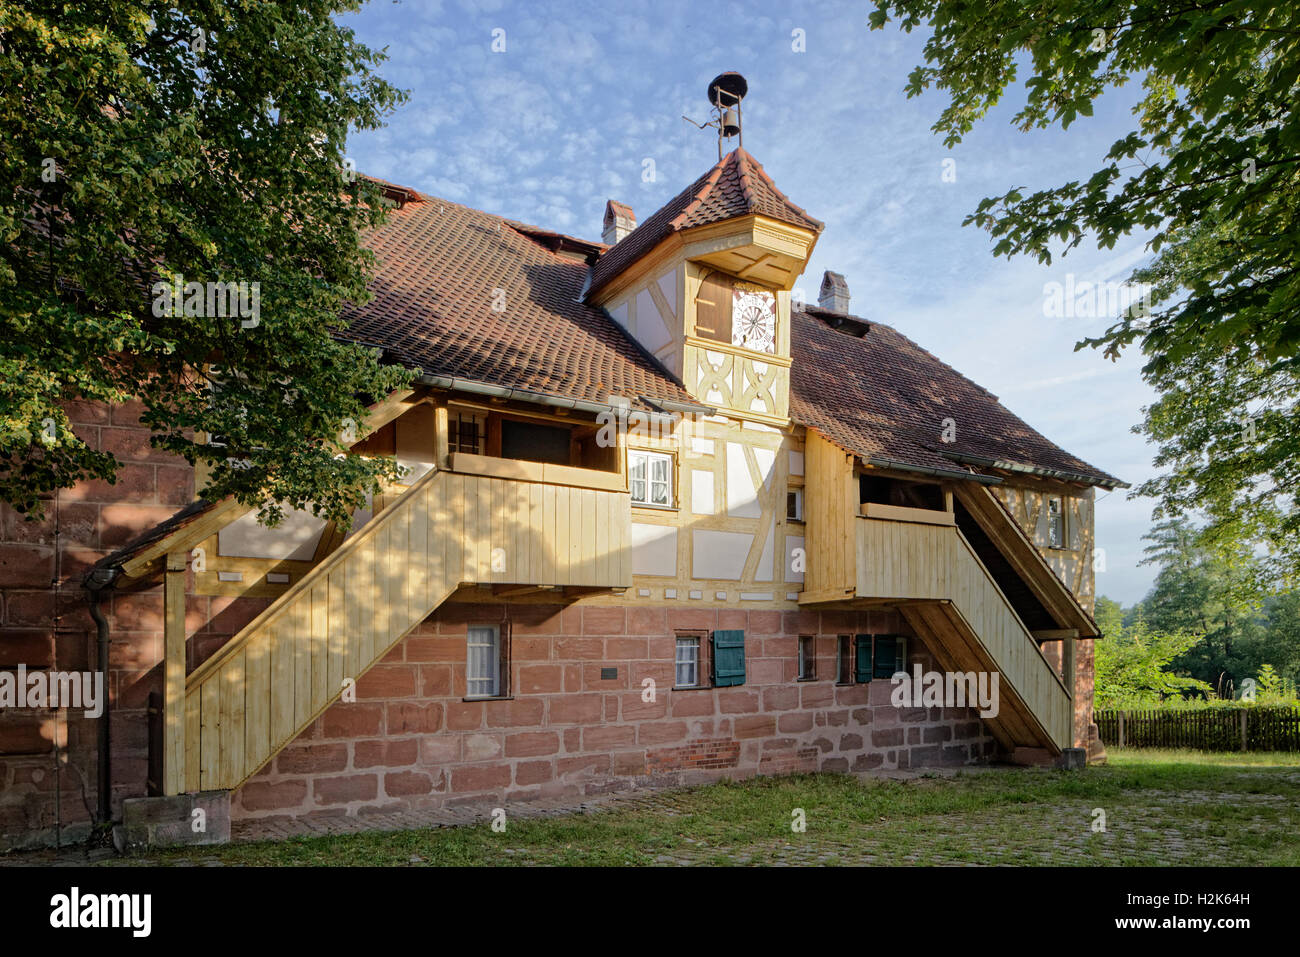 Watch House usine historique, Marteau, Laufamholz, Nuremberg, Middle Franconia, Franconia, Bavaria, Germany Photo Stock